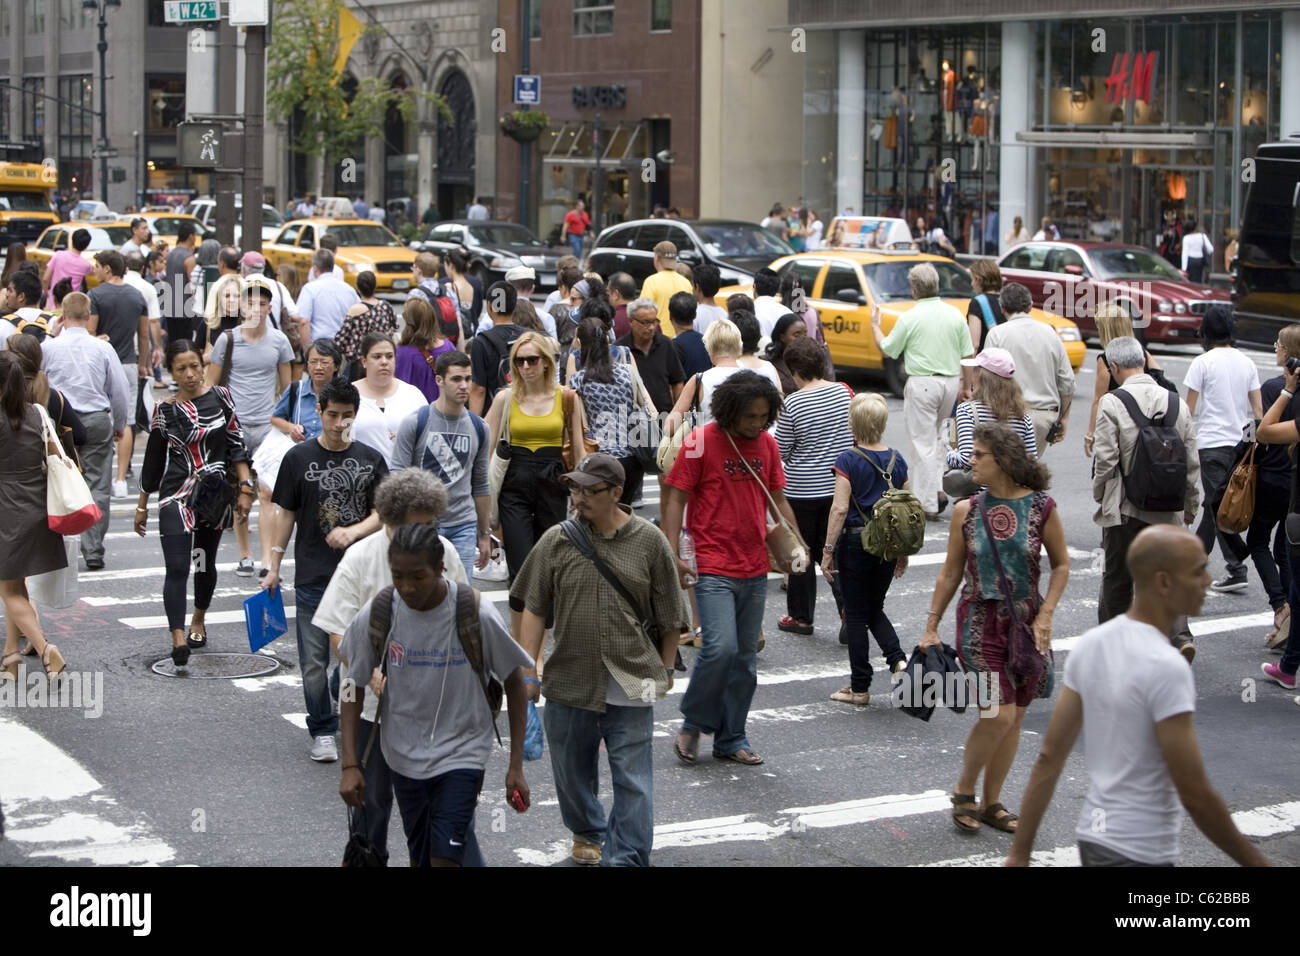 The street is always crowded with tourists, New Yorkers and workers at 5th Avenue and 42nd Street in New York City. - Stock Image